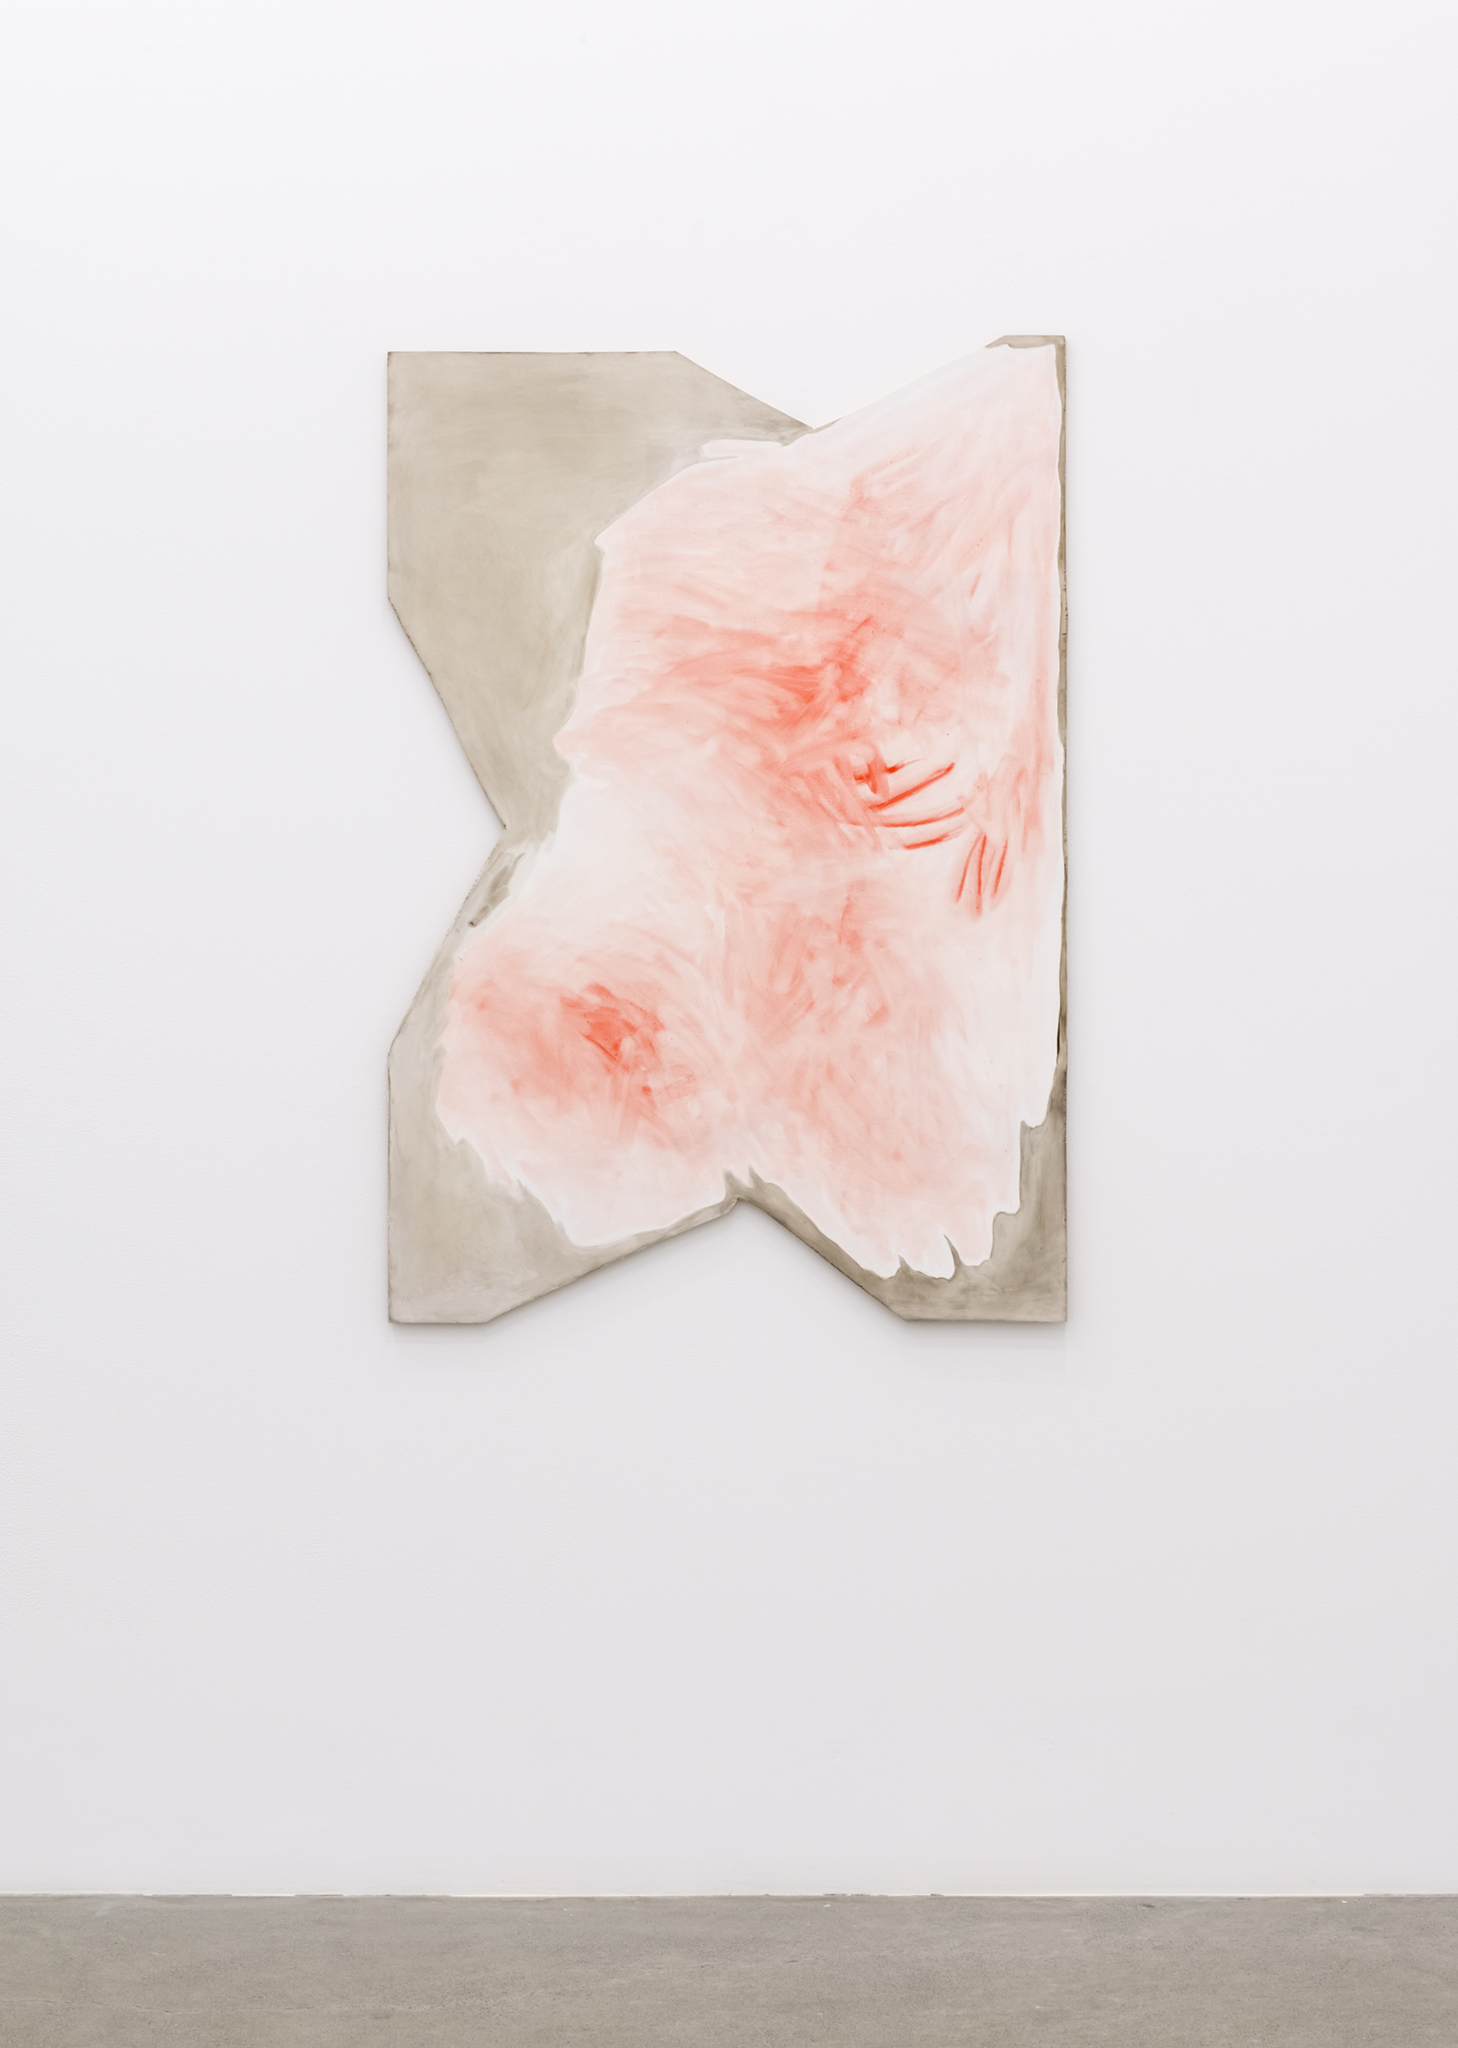 Monique Mouton, Rose, 2014, oil on wood panel, 48 x 33 in. (121 x 83 cm)  by